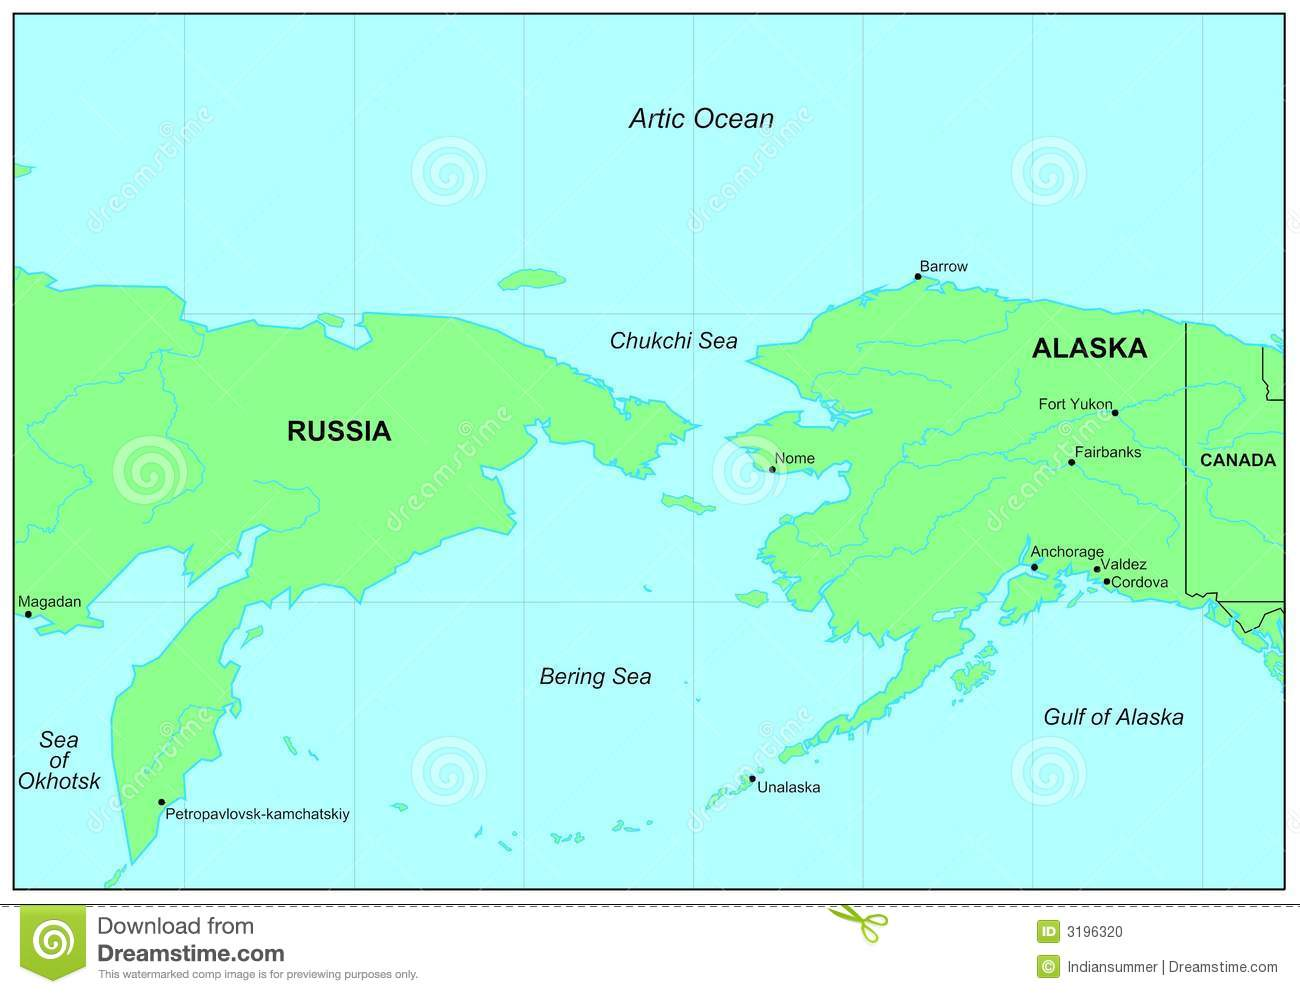 Picture of: Map Bering Sea Stock Illustrations 66 Map Bering Sea Stock Illustrations Vectors Clipart Dreamstime